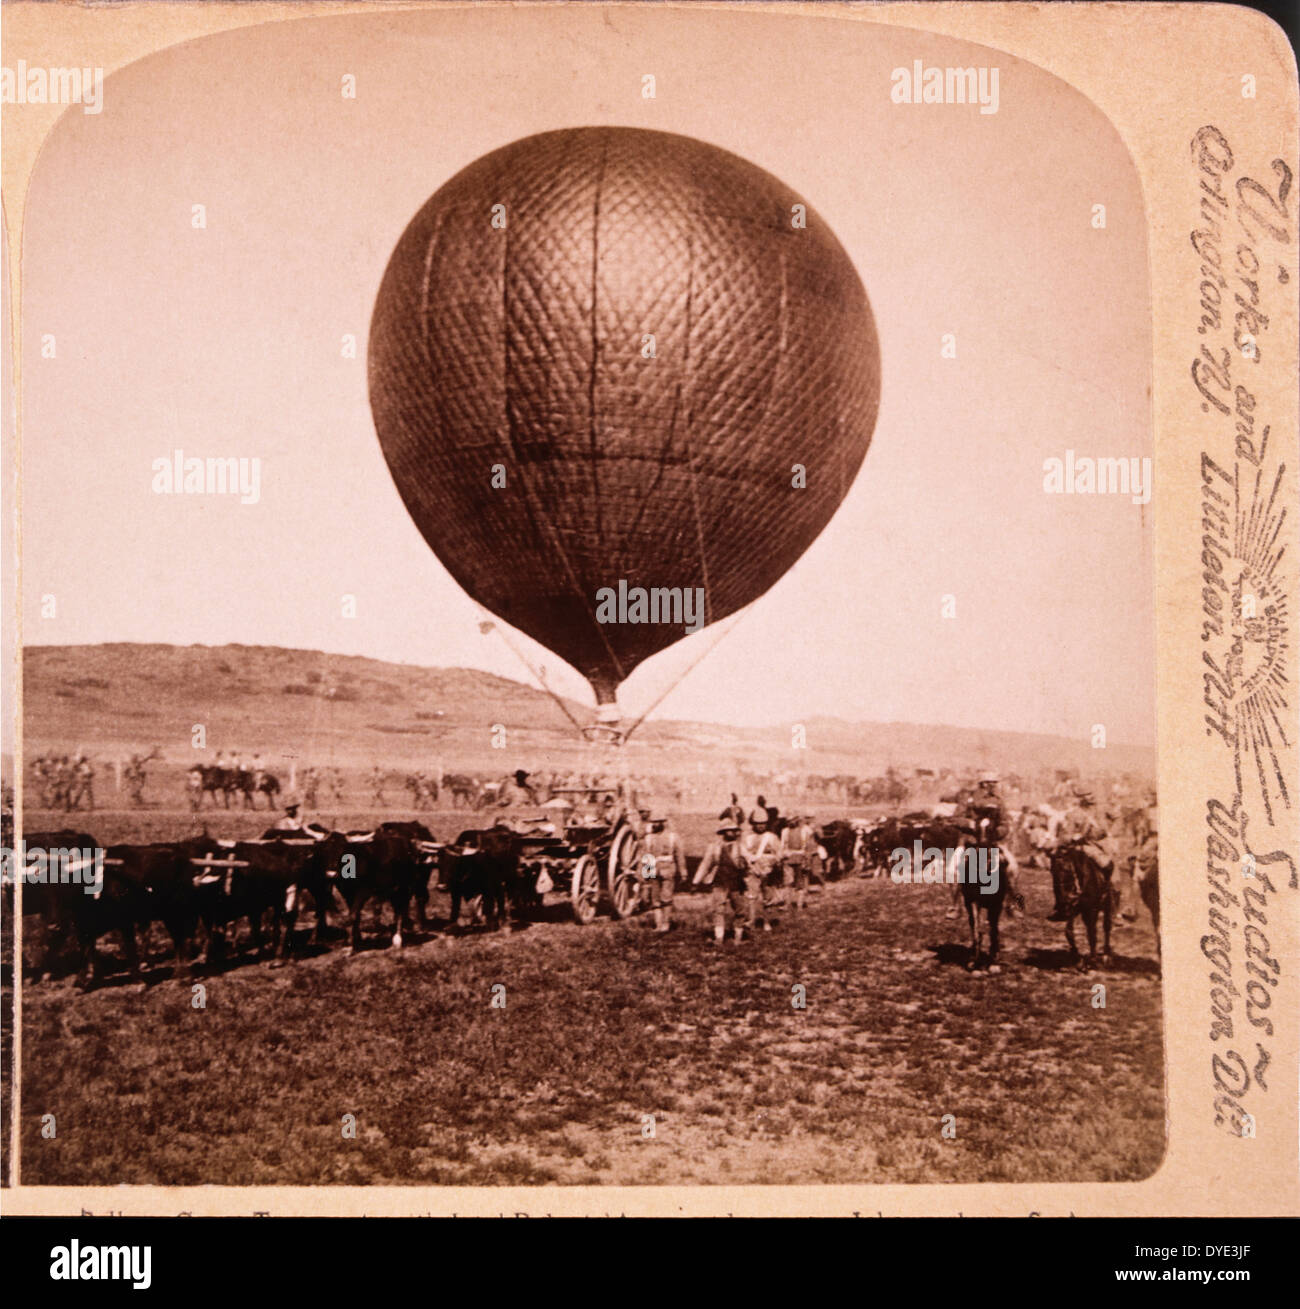 Balloon Corps Transport with Lord Roberts' Army Advancing on Johannesburg, South Africa, Second Boer War, 1901 - Stock Image